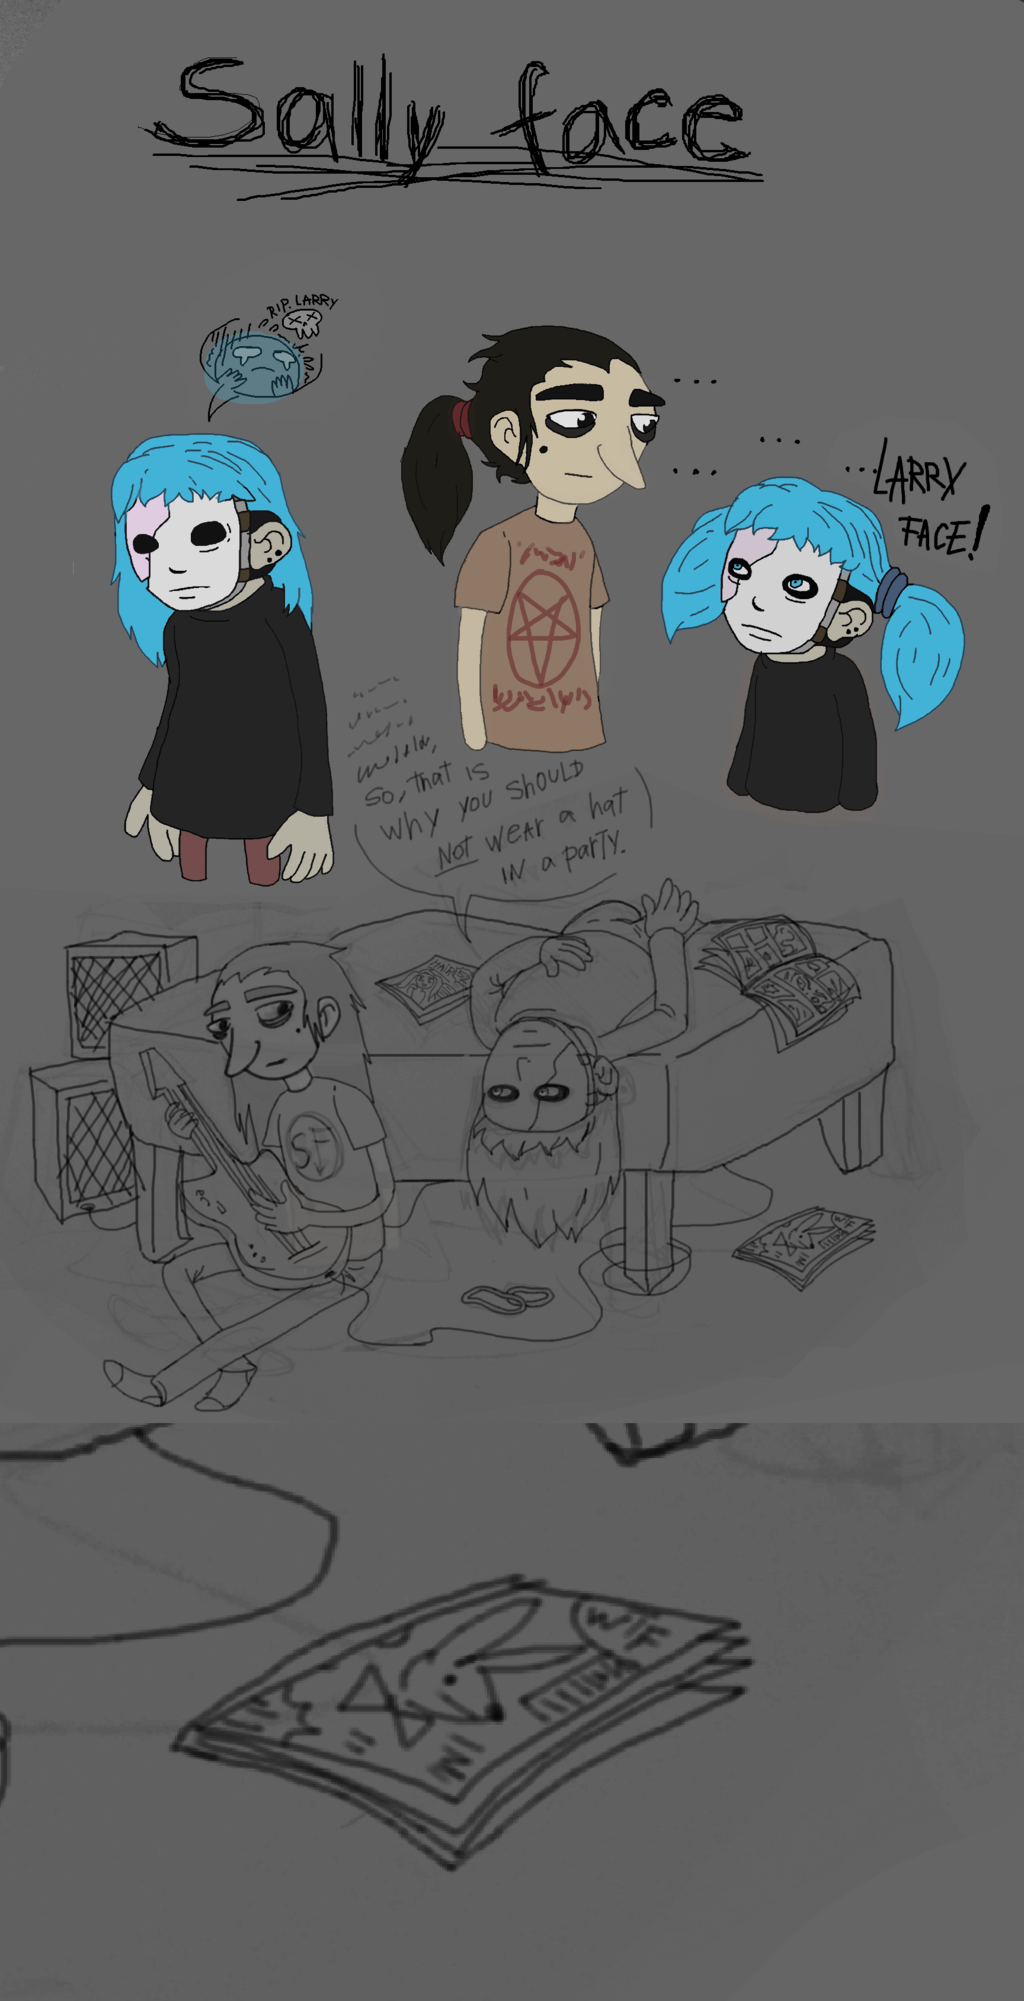 sally face larry fanart smut game deviantart chapter fan ships yaoi sketch don madness returns alice sallyface drawings tell them